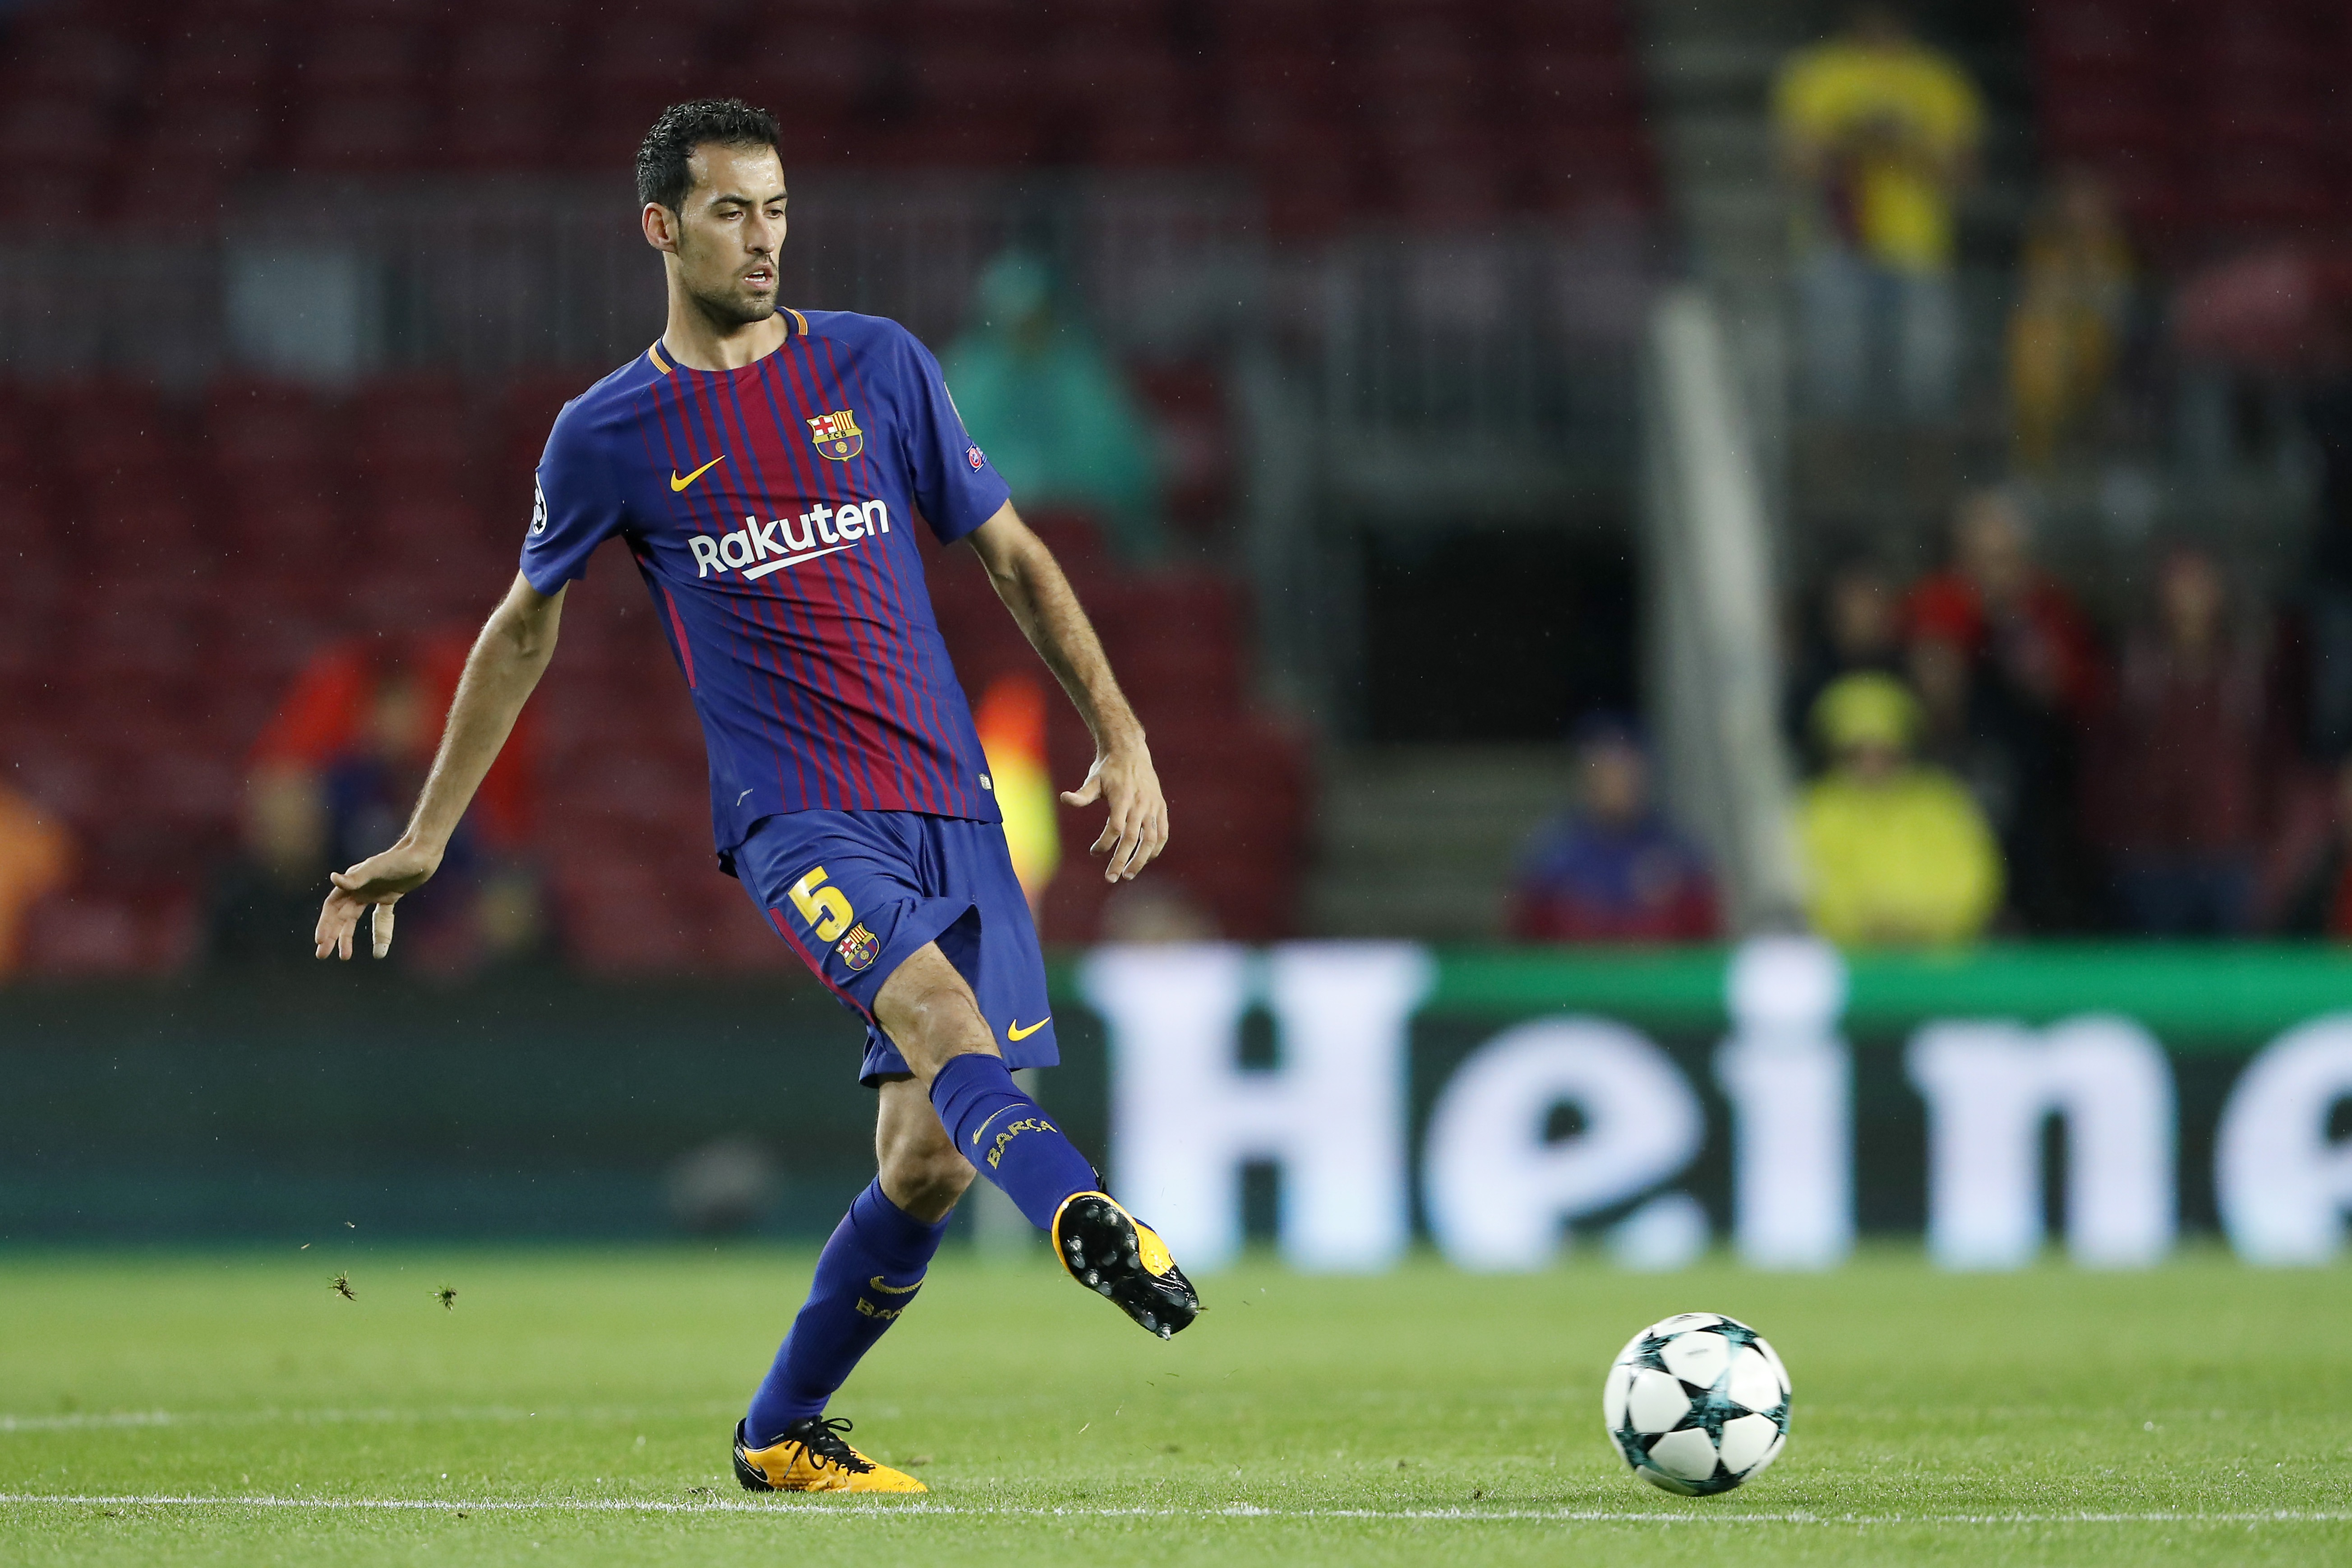 Dossier : Busquets, toujours aussi fort